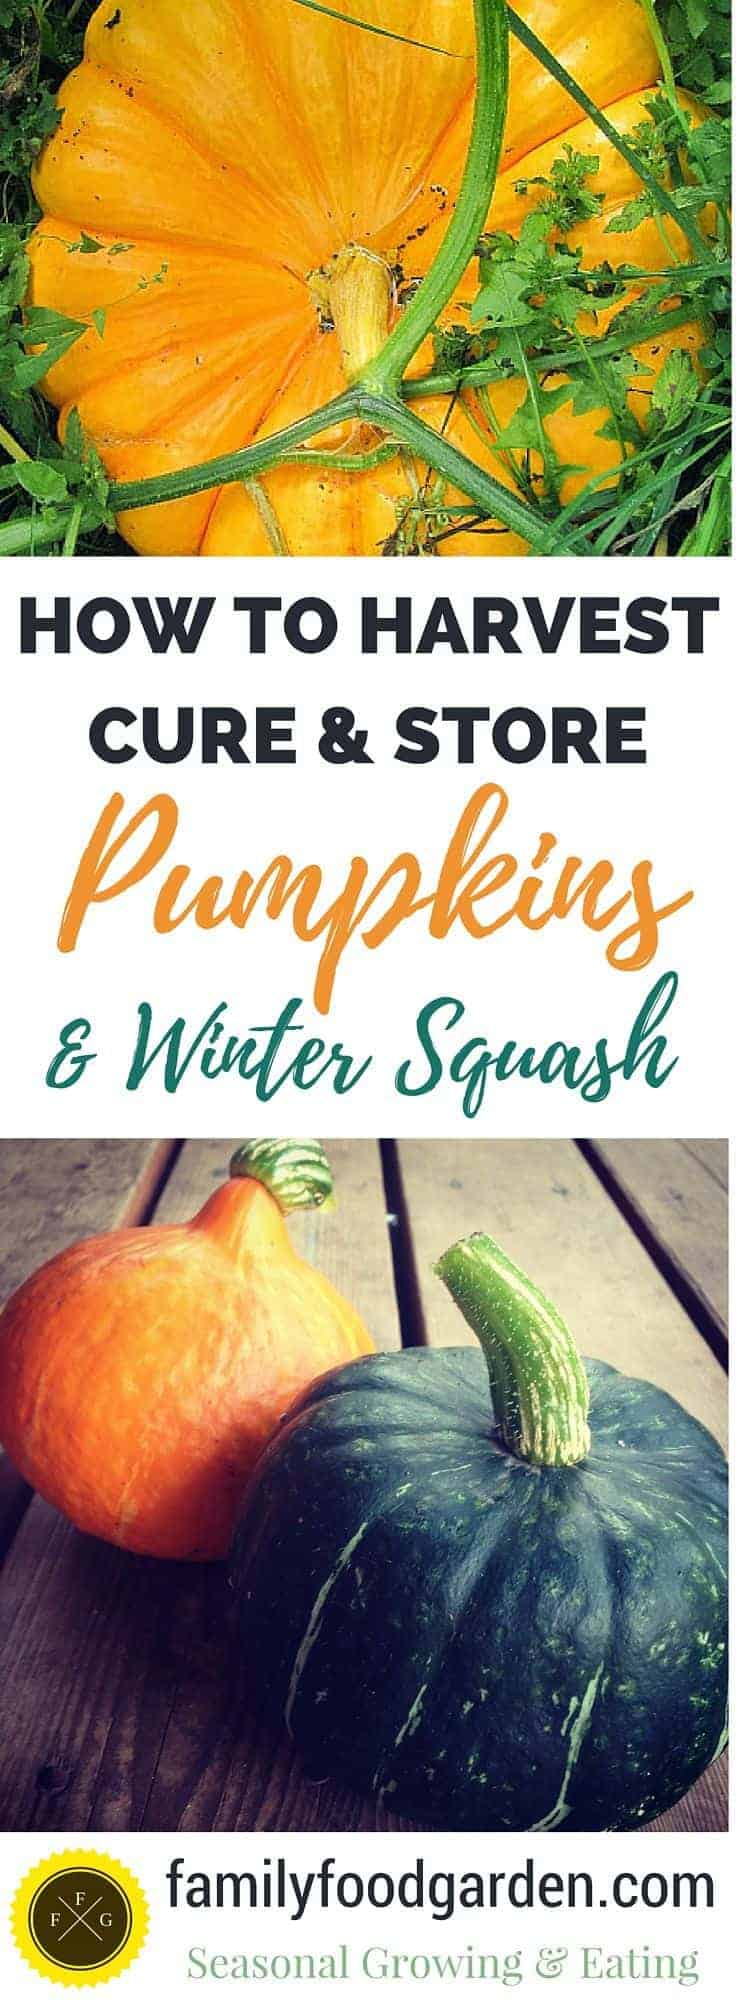 How to harvest, cure & store winter squash and pumpkins